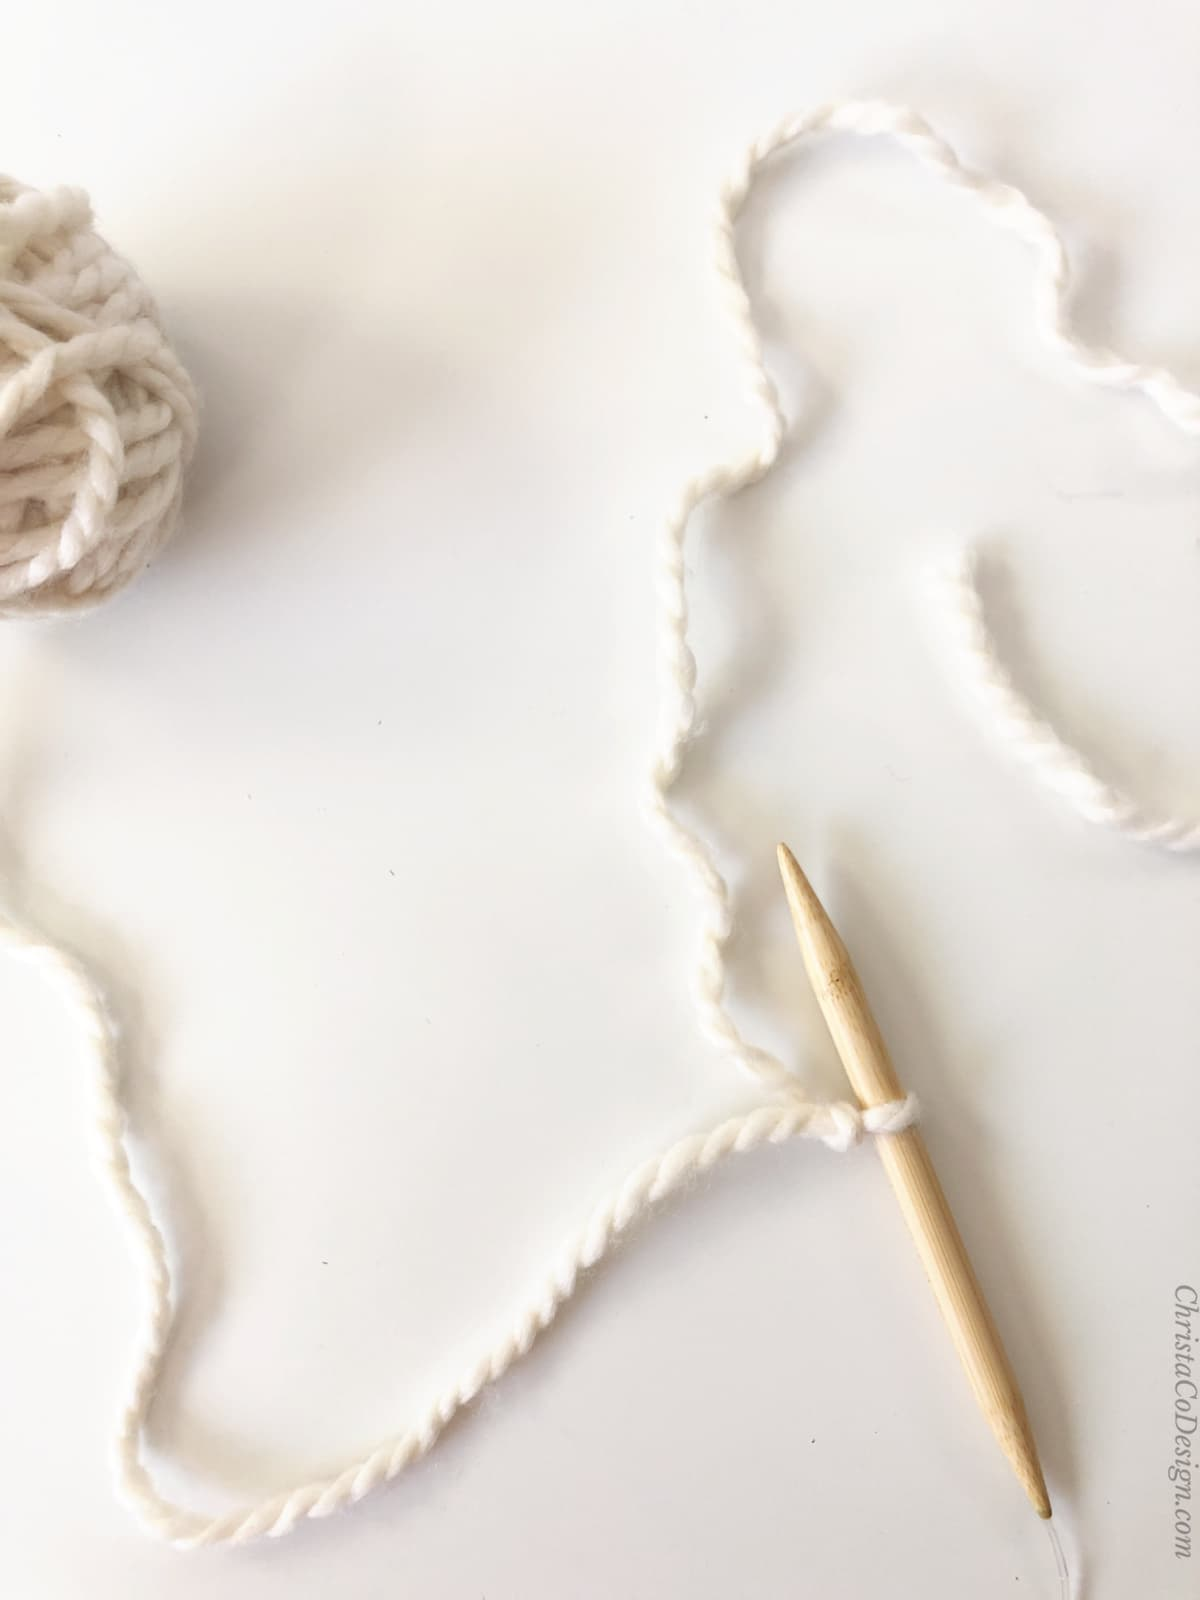 Slip knot on needle, working yarn on left, long tail on right.